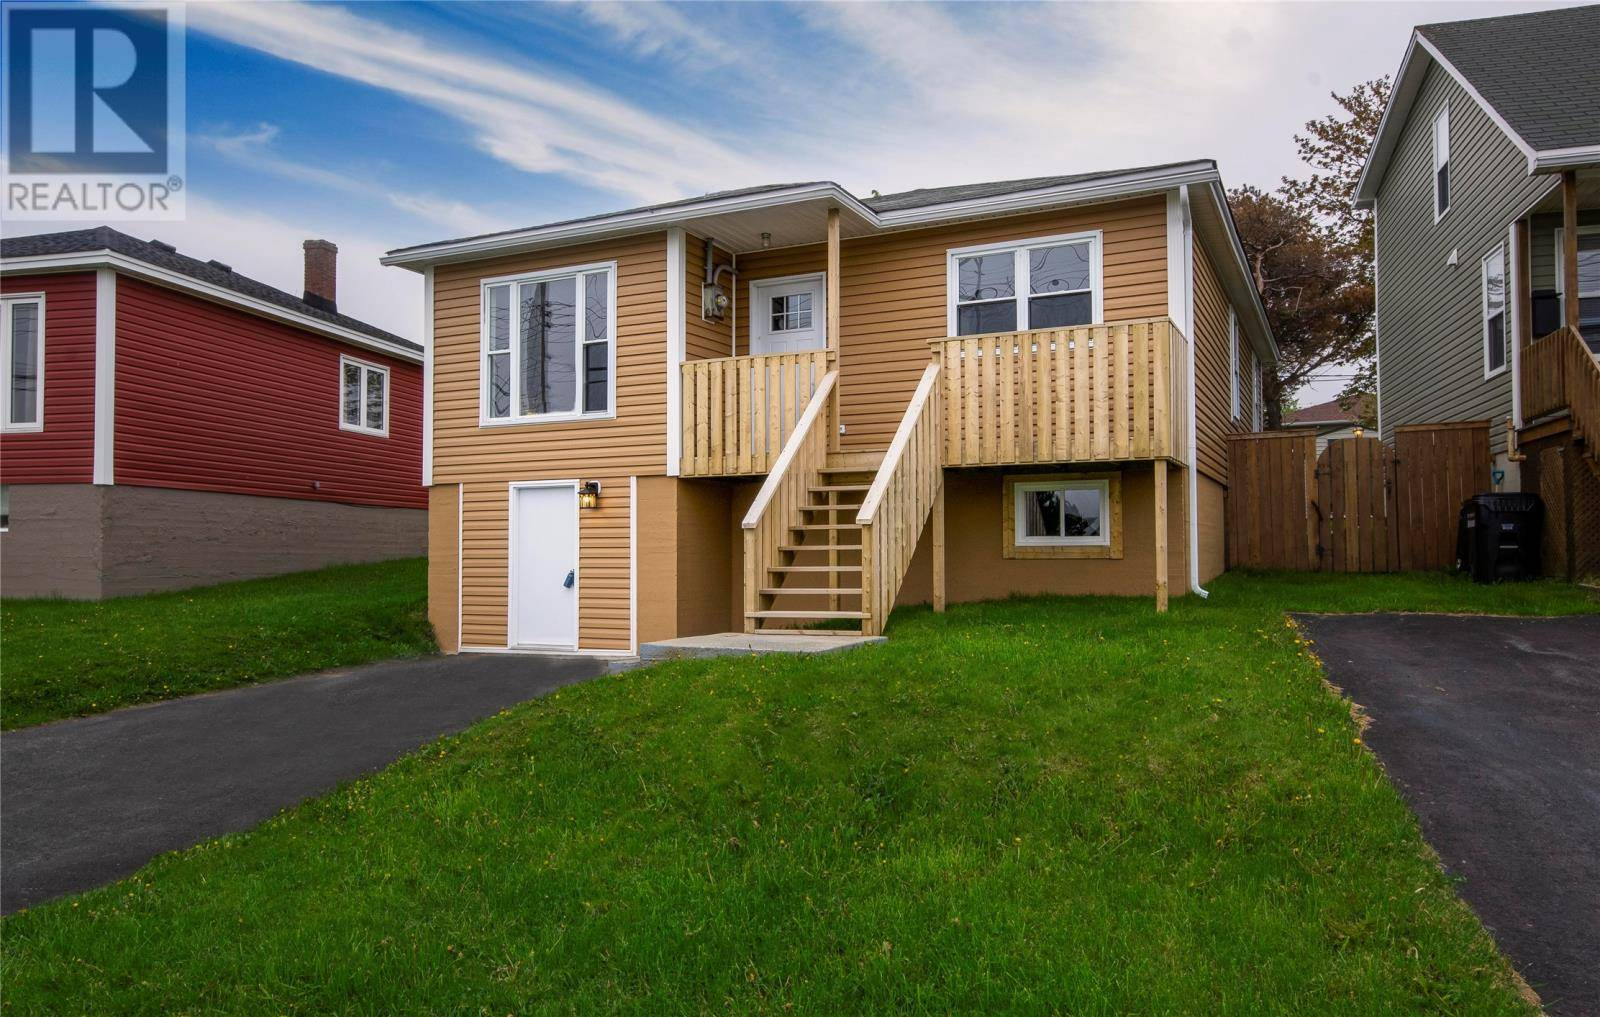 House for sale at 327 Empire Ave St. John's Newfoundland - MLS: 1205495